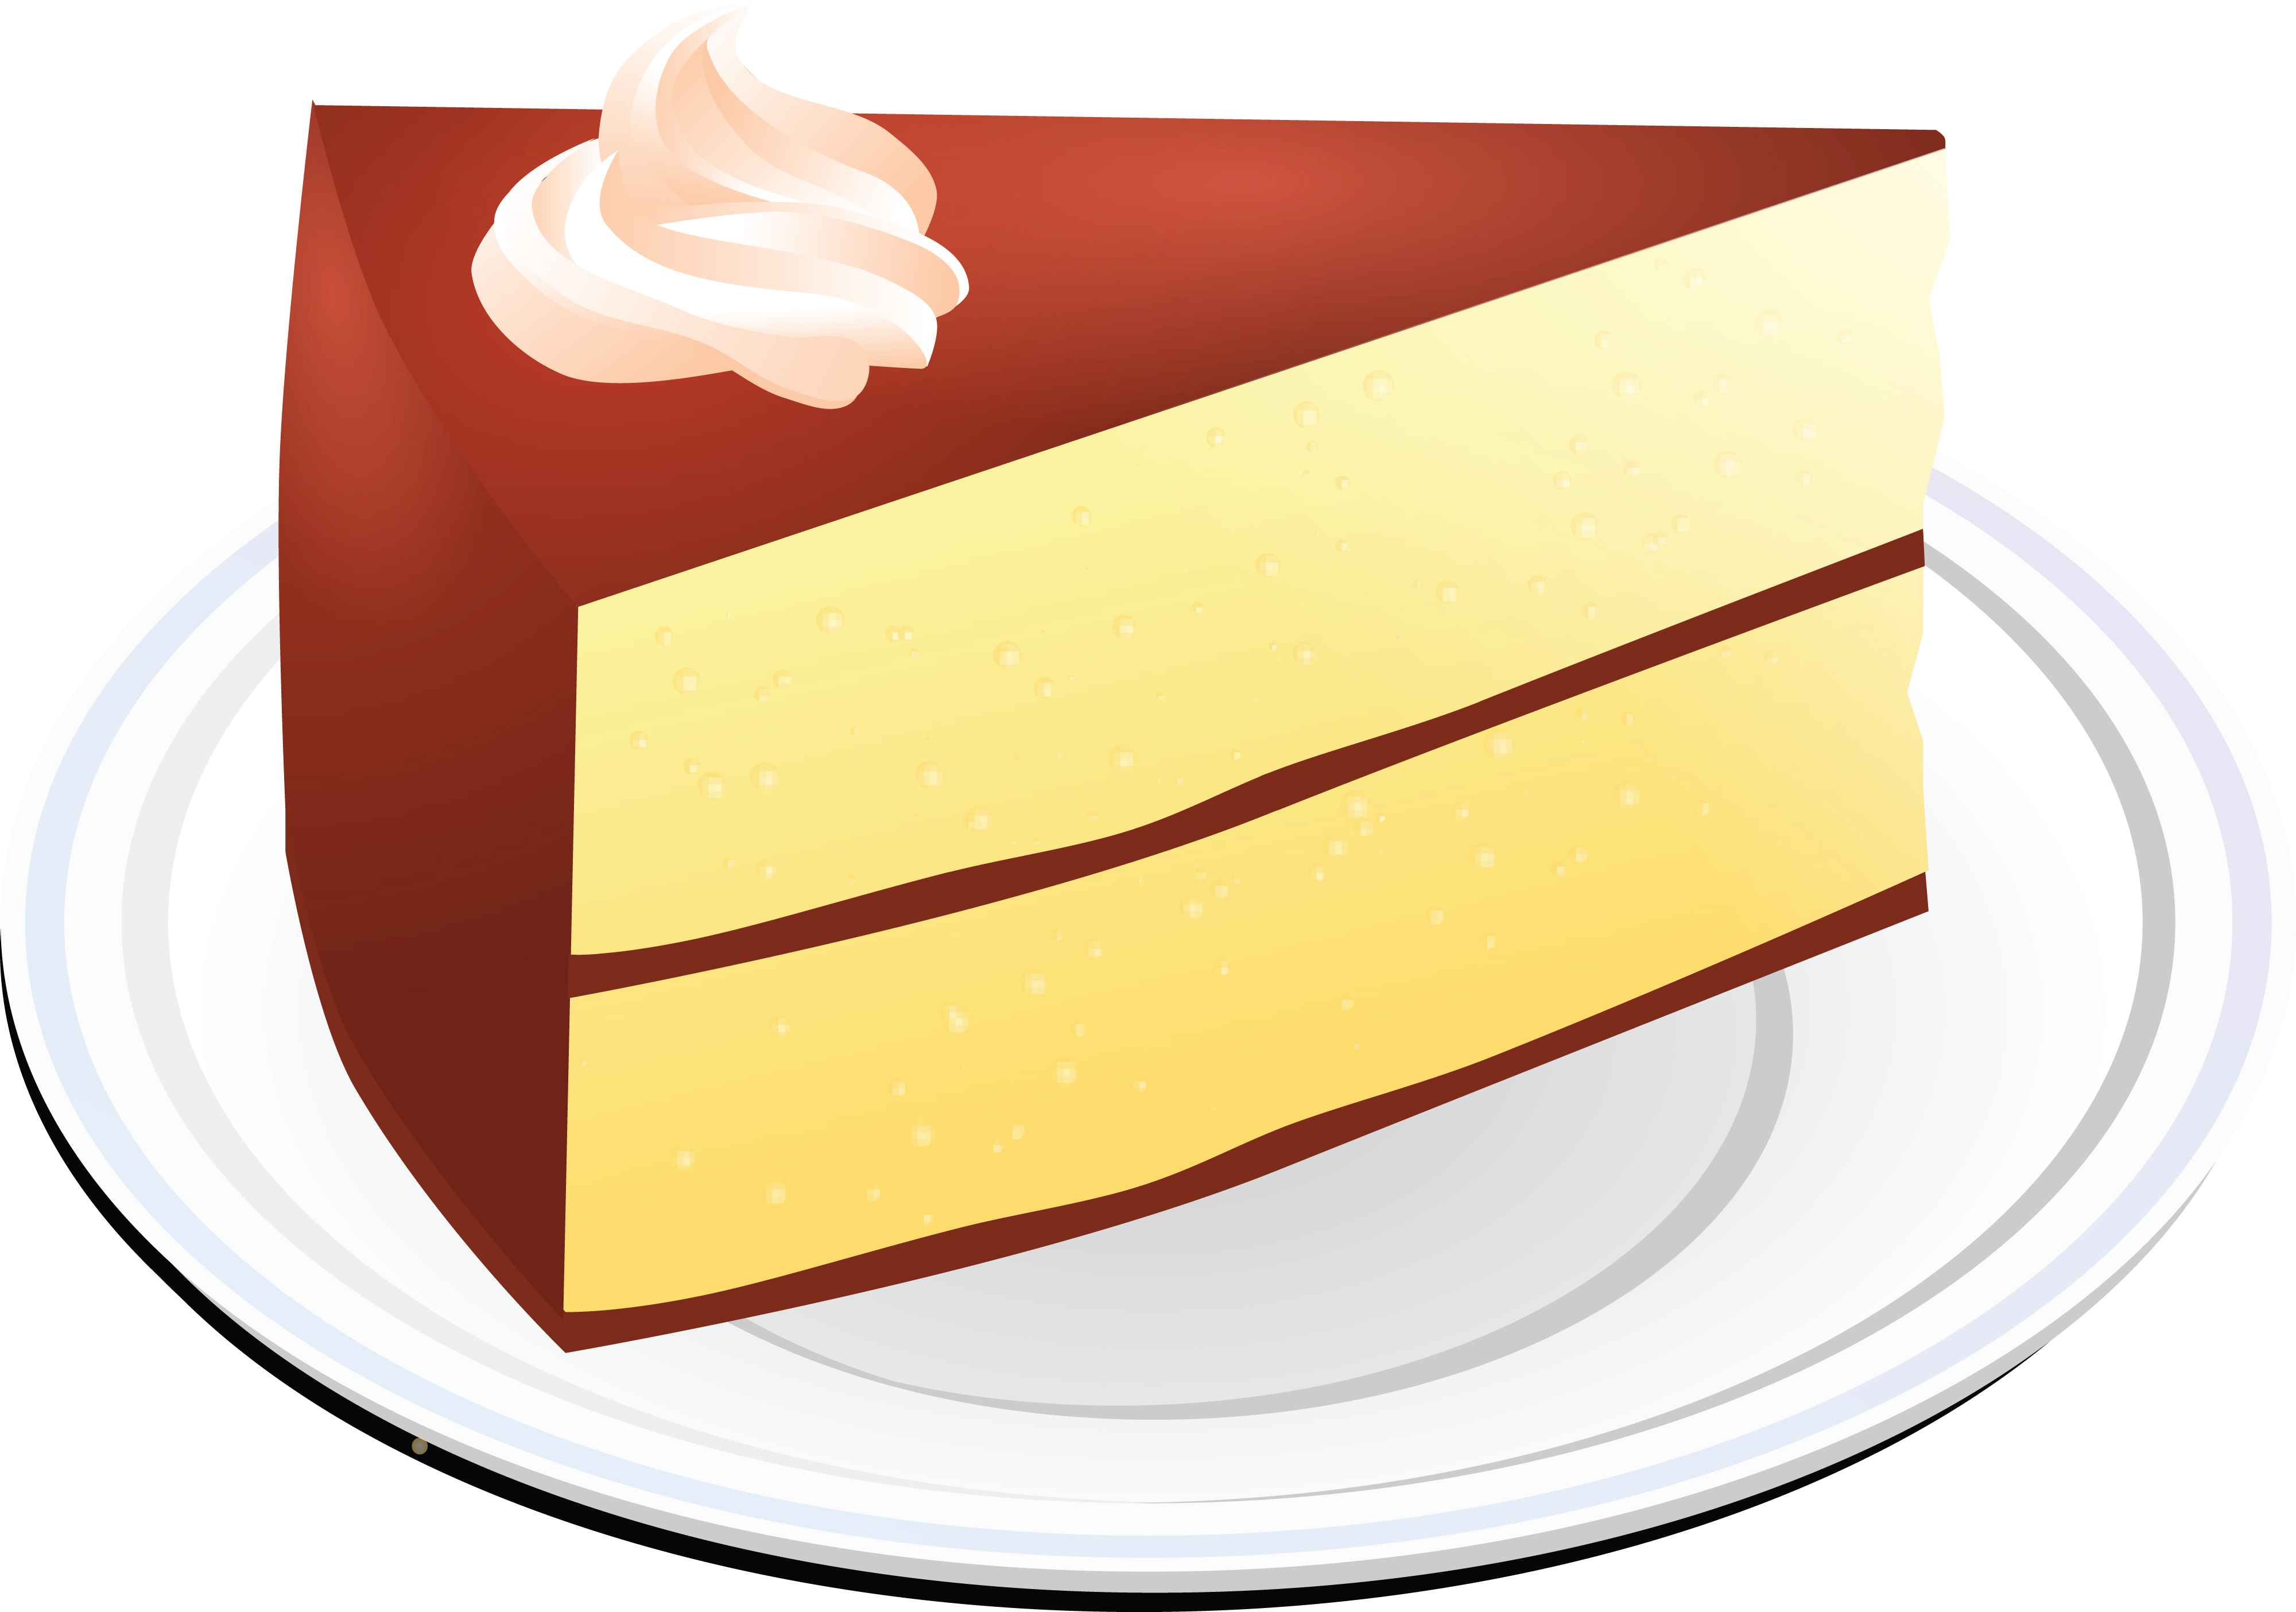 Clipart of a Layered Vanilla Cake With Chocolate Frosting.